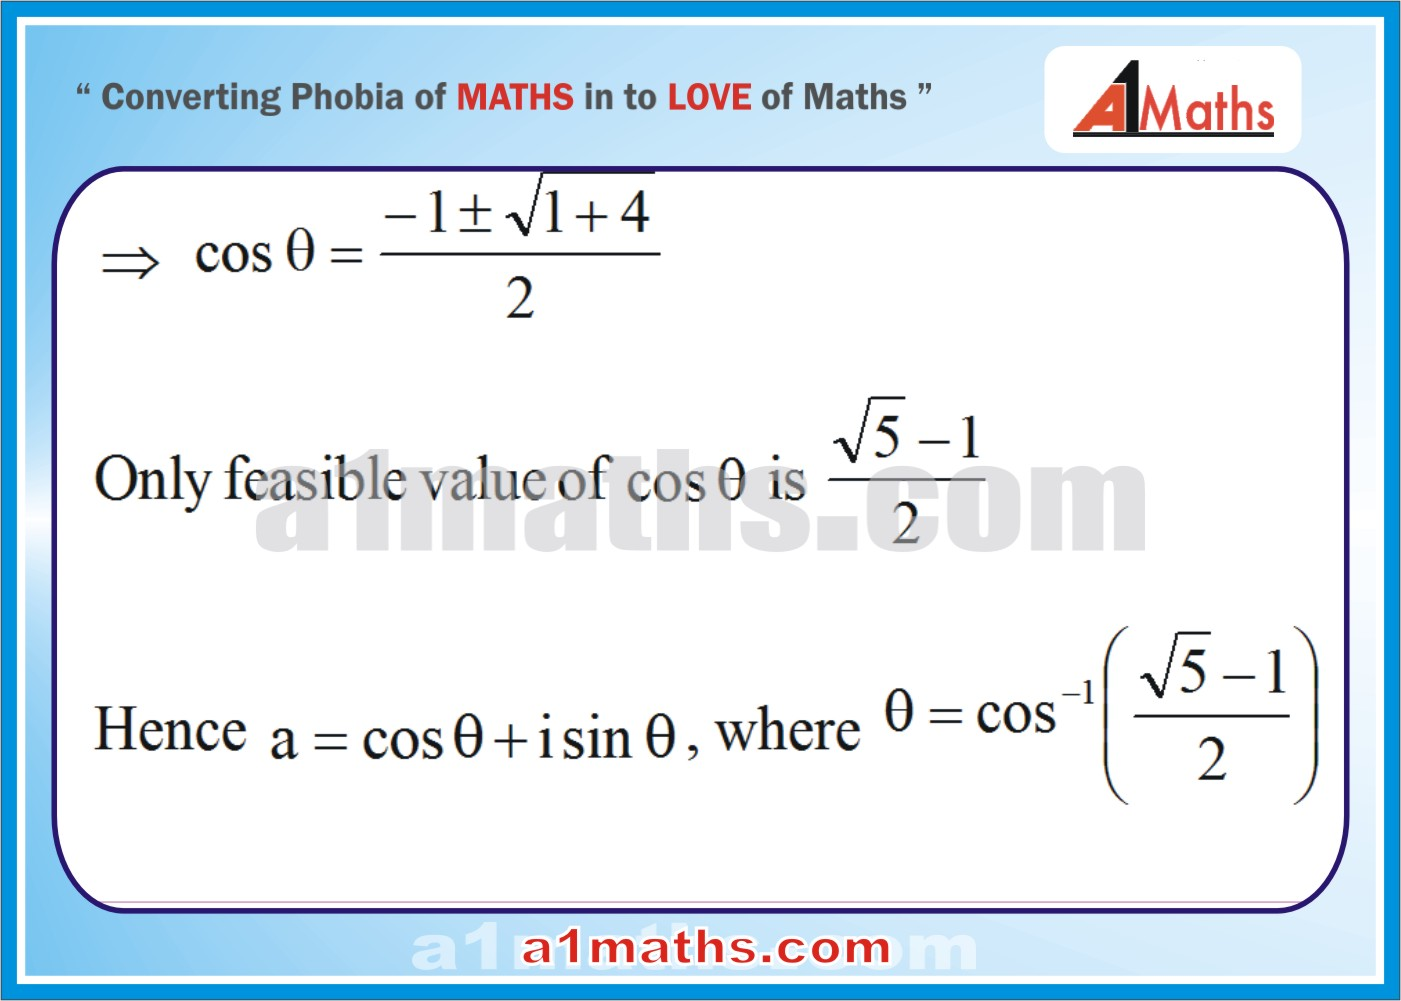 solved 2 Solving definite integrals how to find antiderivatives we have three methods: 1basic formulas 2algebraic simplification first solve an indefinite integral to find an antiderivative then use that antiderivative to solve the definite integral.